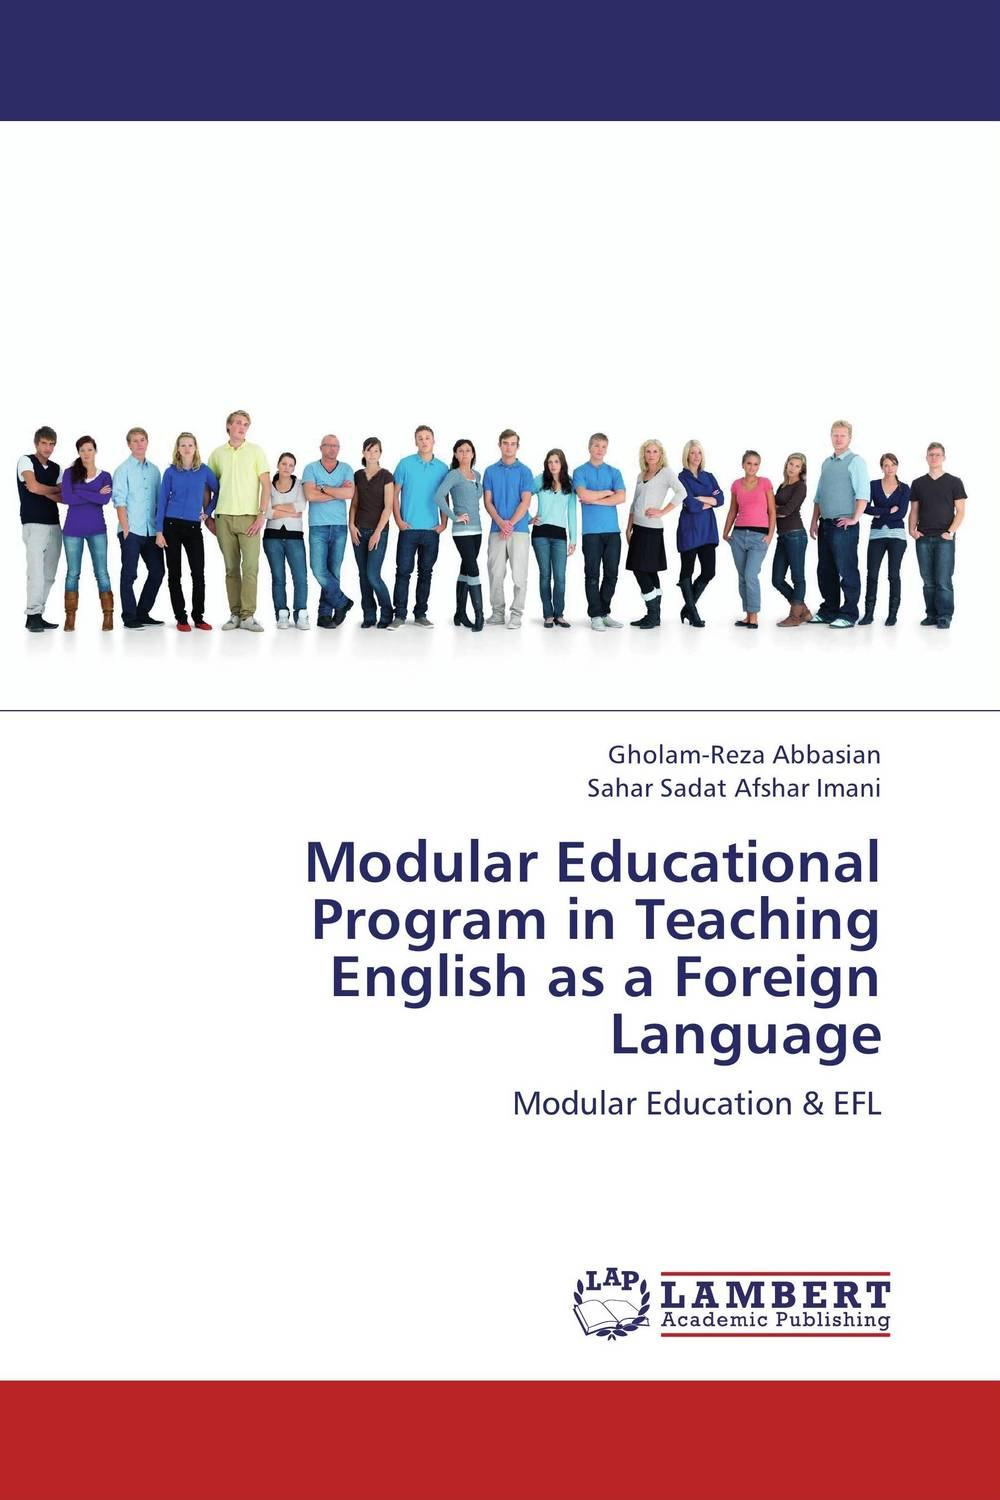 Modular Educational Program in Teaching English as a Foreign Language duncan bruce the dream cafe lessons in the art of radical innovation